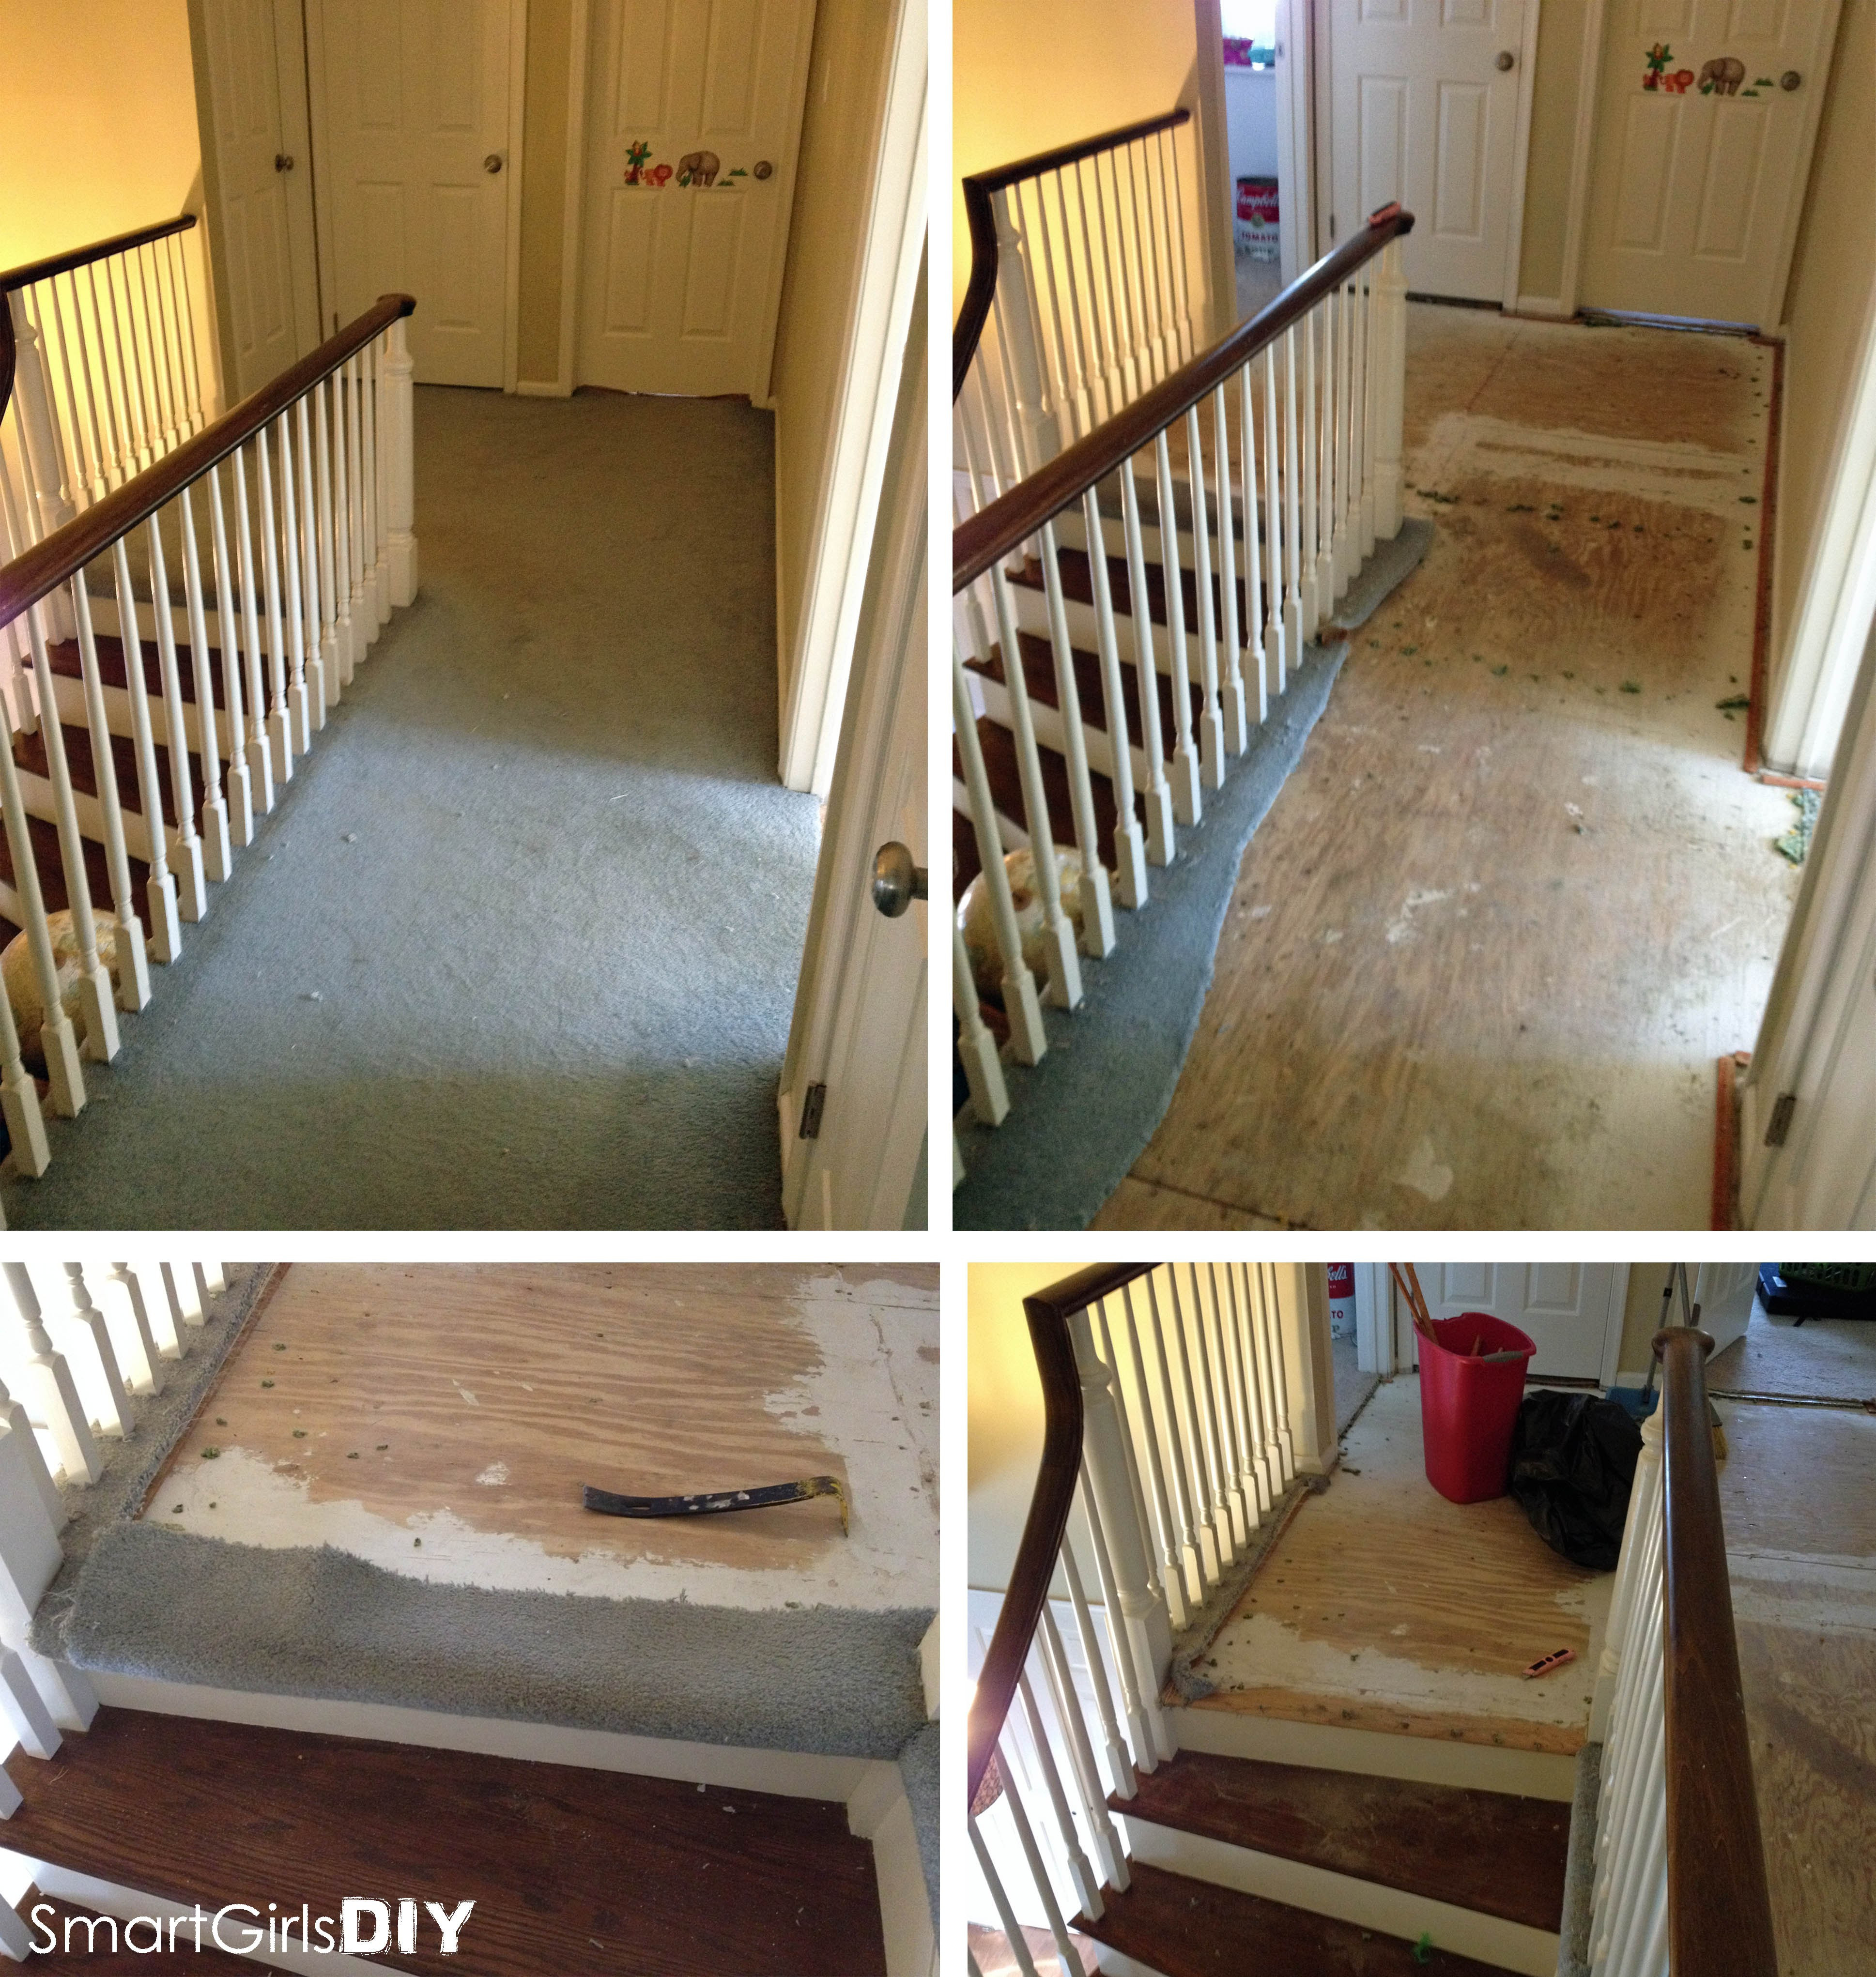 how much would it cost to lay hardwood floor of upstairs hallway 1 installing hardwood floors with removing carpet from hallway installing the hardwood floor